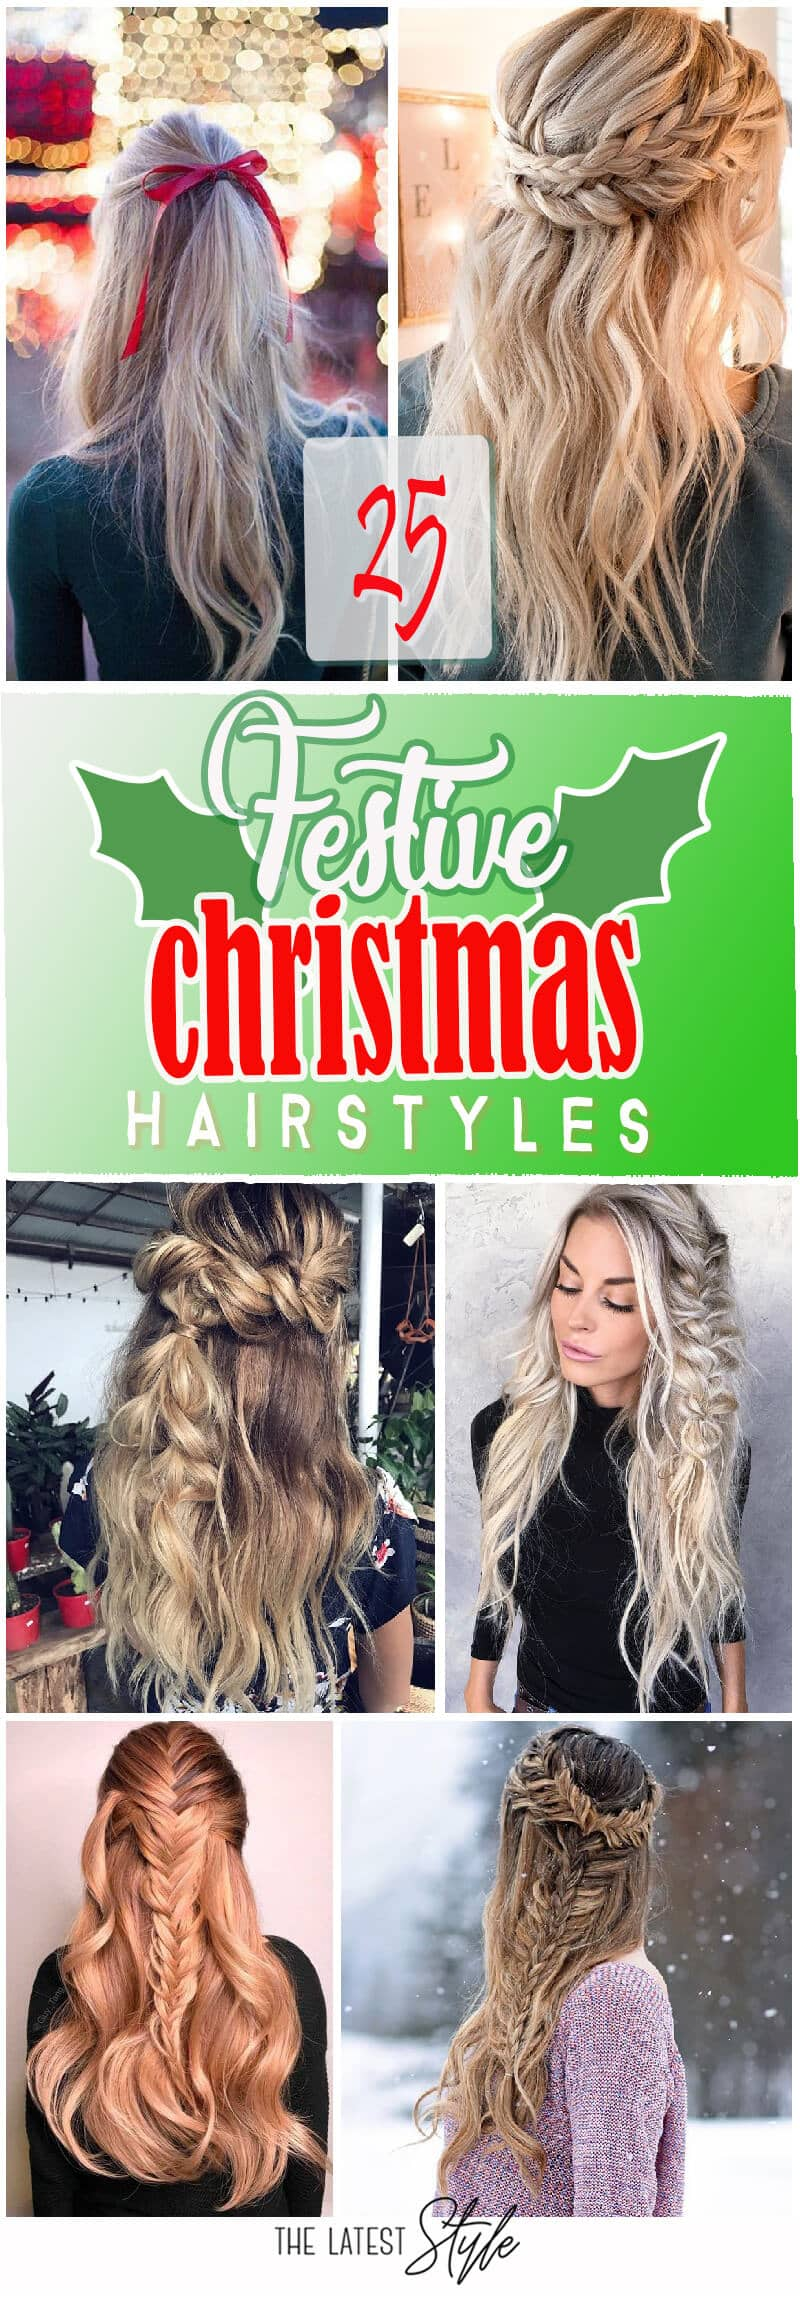 25 Festive & Fabulous Christmas Hairstyles